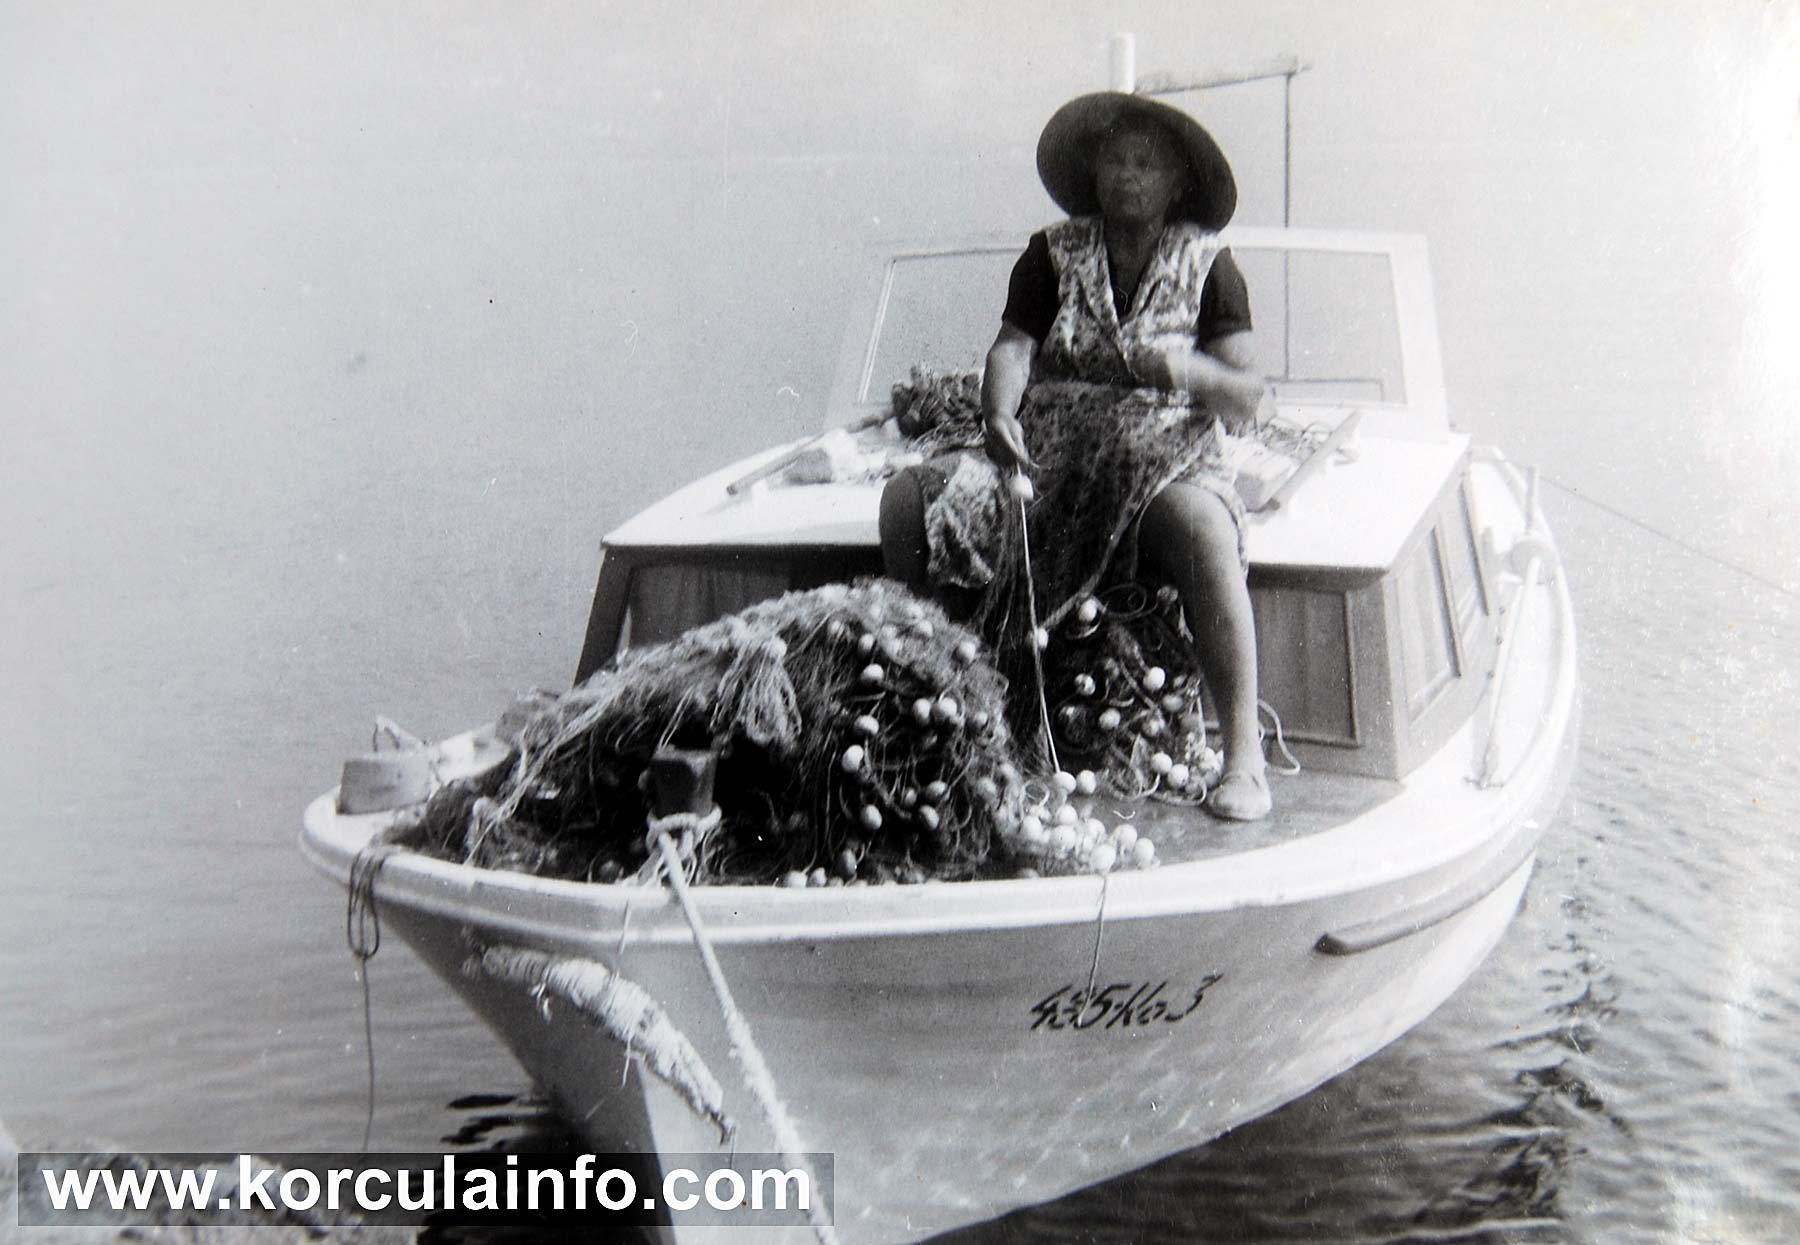 Teta Stefa - local fisherwoman in her boat with her fishnets - Korcula (1970s)